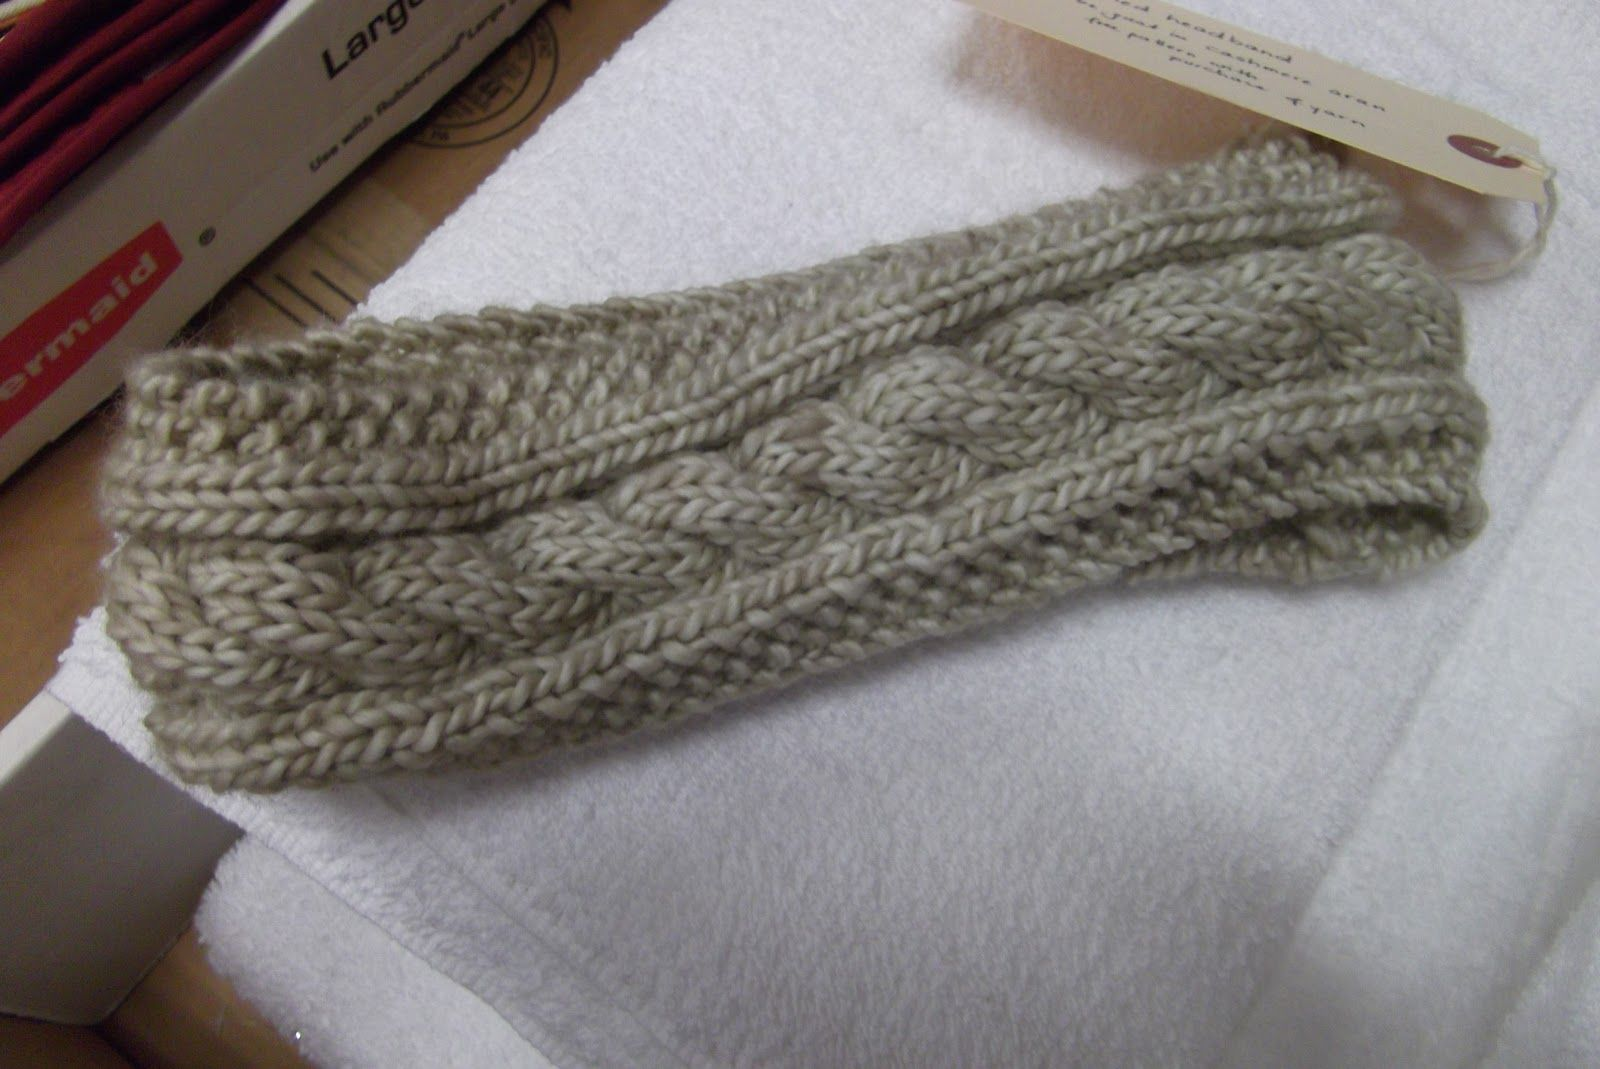 cable knitting patterns | Cabled Knit Headband Pattern Instruction ...